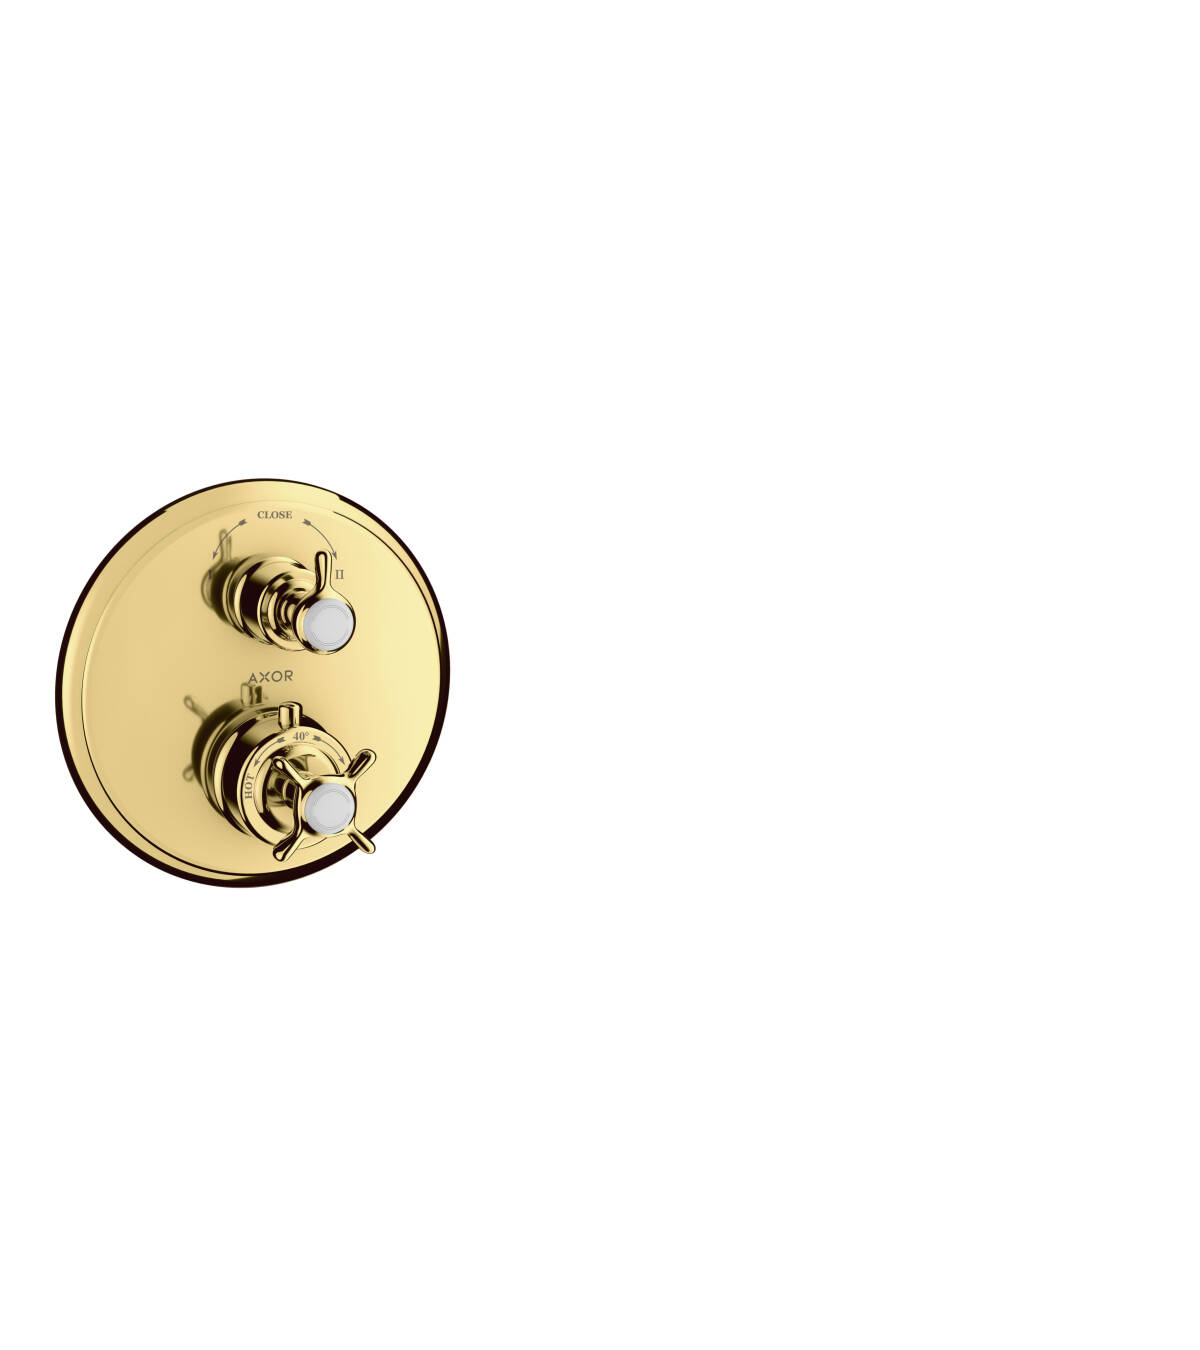 Thermostat for concealed installation with cross handle and shut-off/ diverter valve, Polished Gold Optic, 16820990